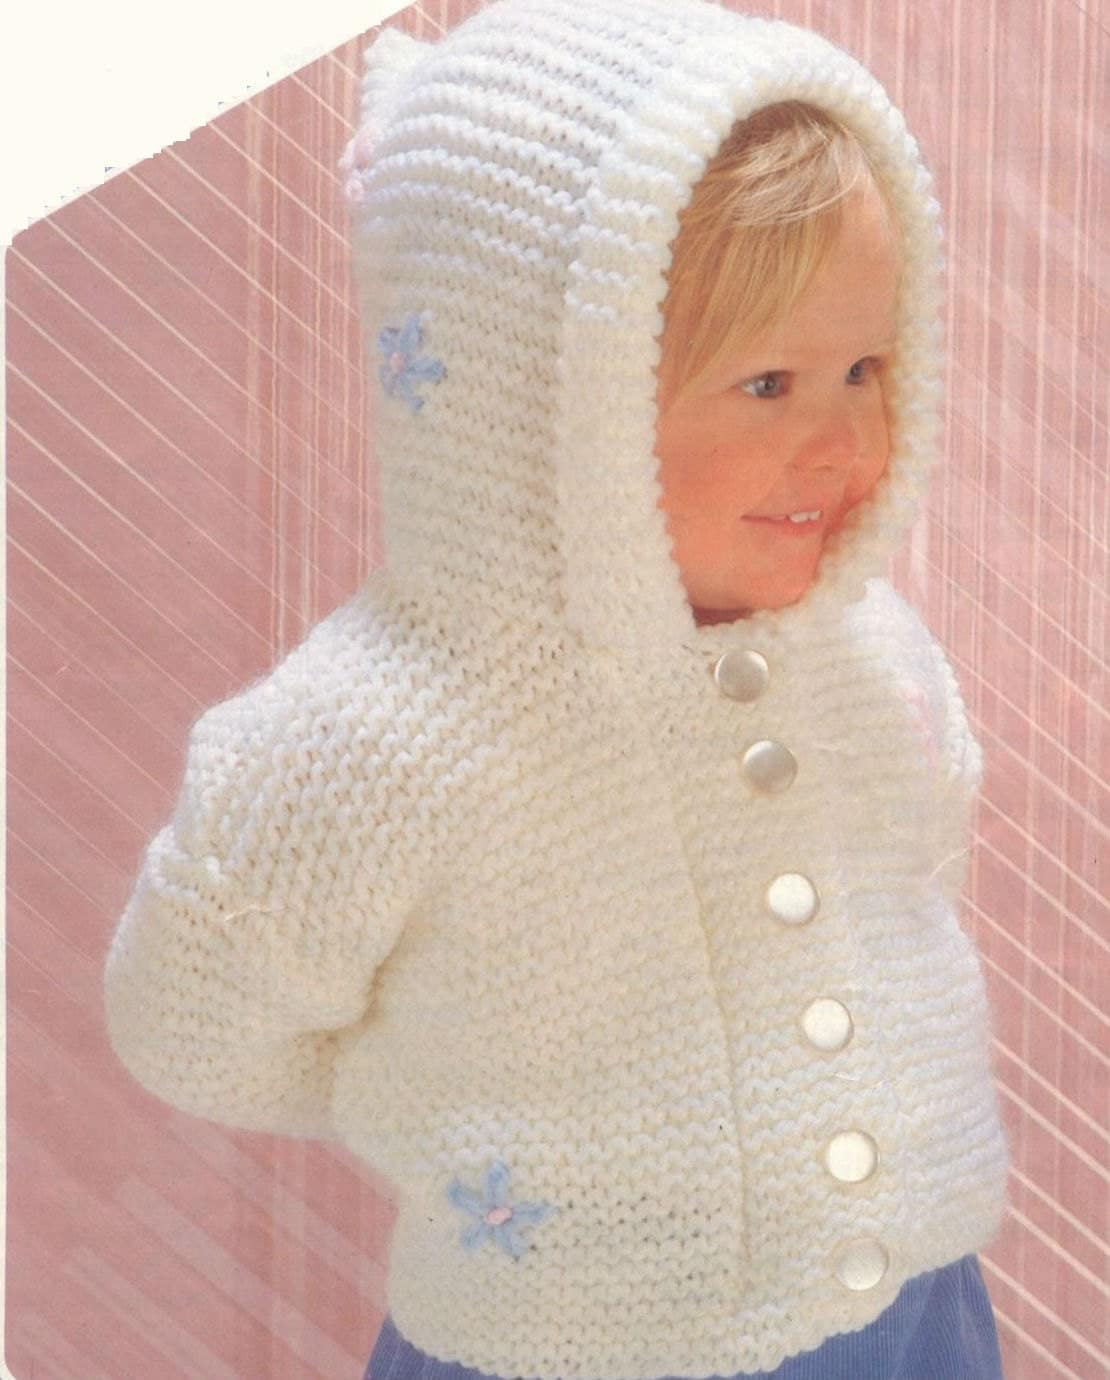 Knitting Pattern Baby Hooded Jacket : Knit Baby Hooded Jacket Vintage Knitting by GrannyPatternStore